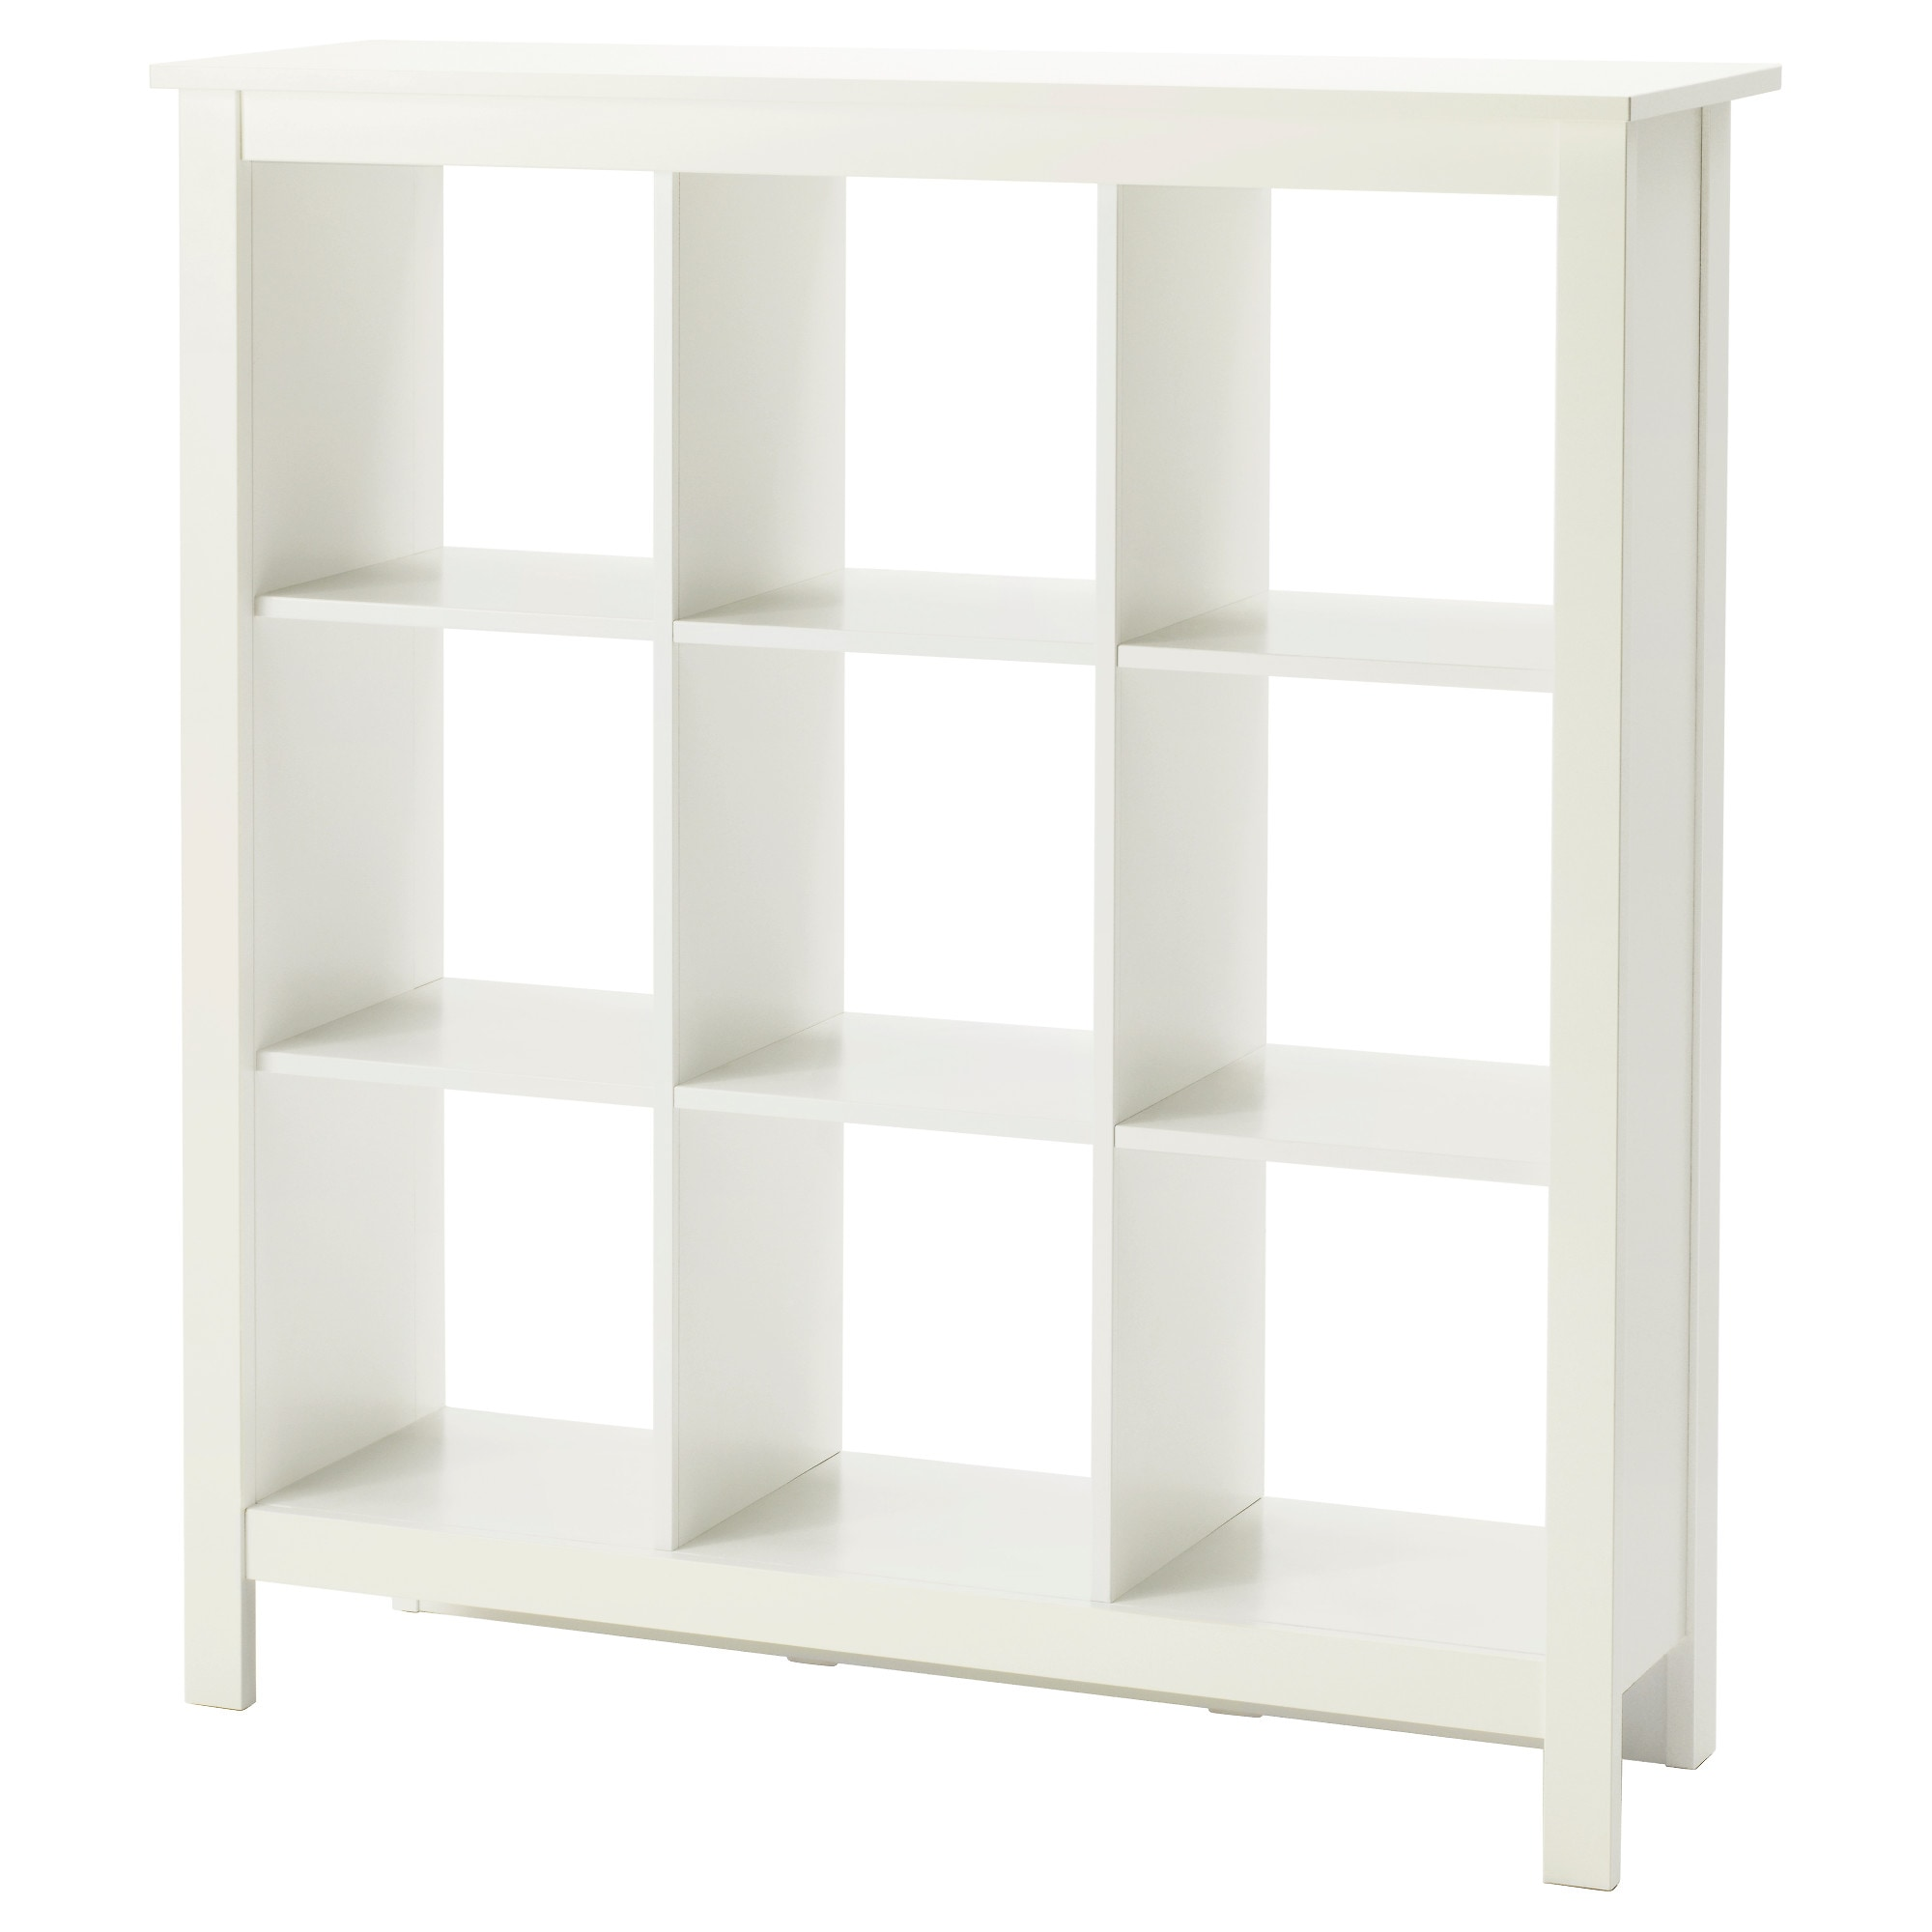 kleines weies regal trendy full size of regal weis ikea expedit kleines regal weiss weiss. Black Bedroom Furniture Sets. Home Design Ideas